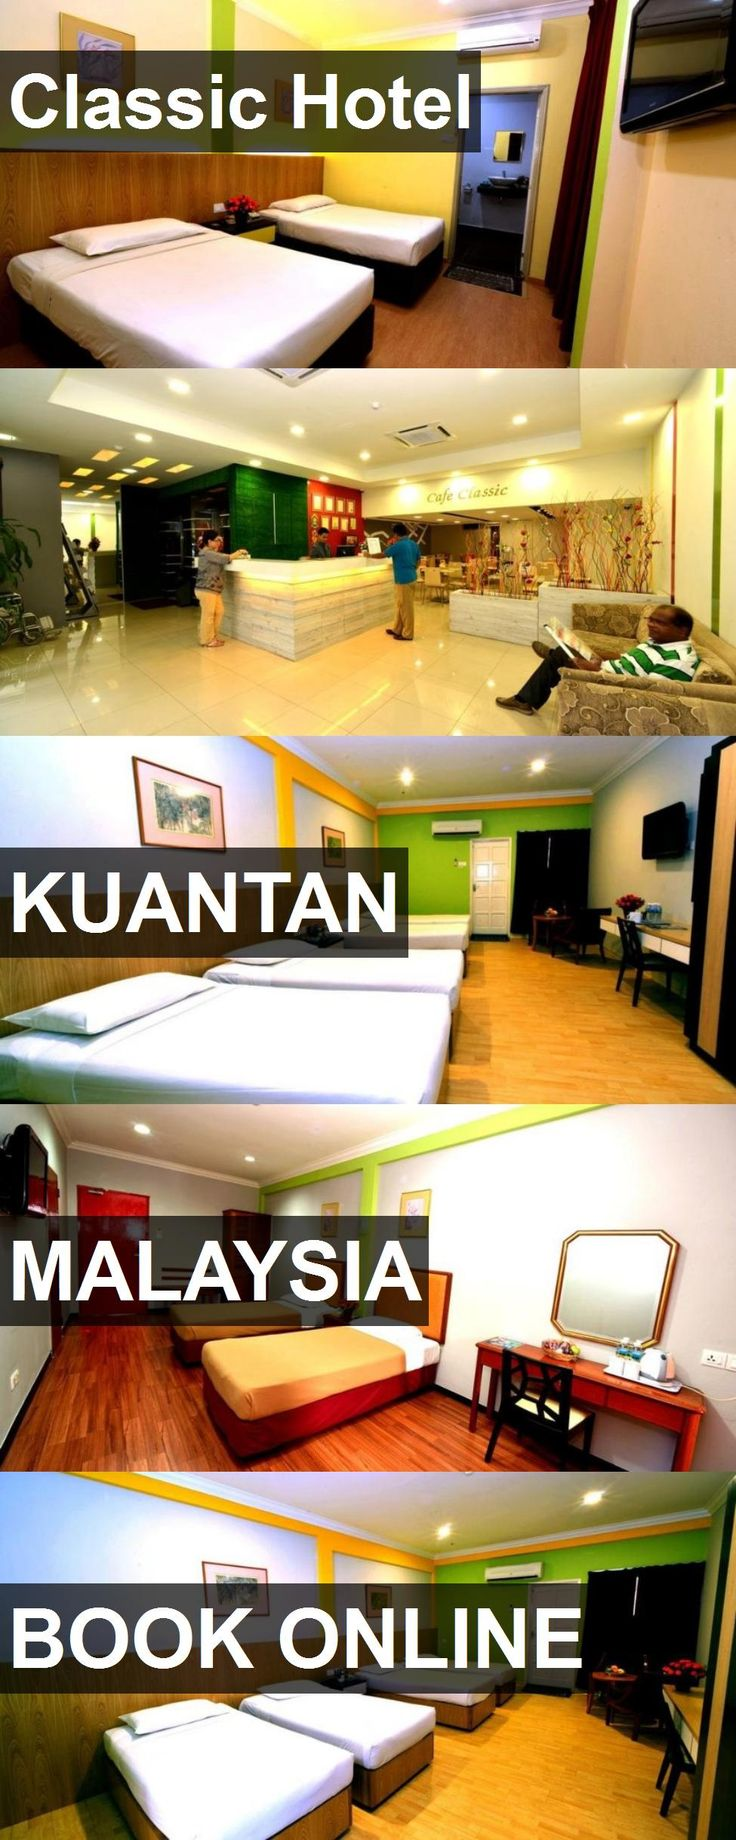 Classic Hotel in Kuantan, Malaysia. For more information, photos, reviews and best prices please follow the link. #Malaysia #Kuantan #travel #vacation #hotel